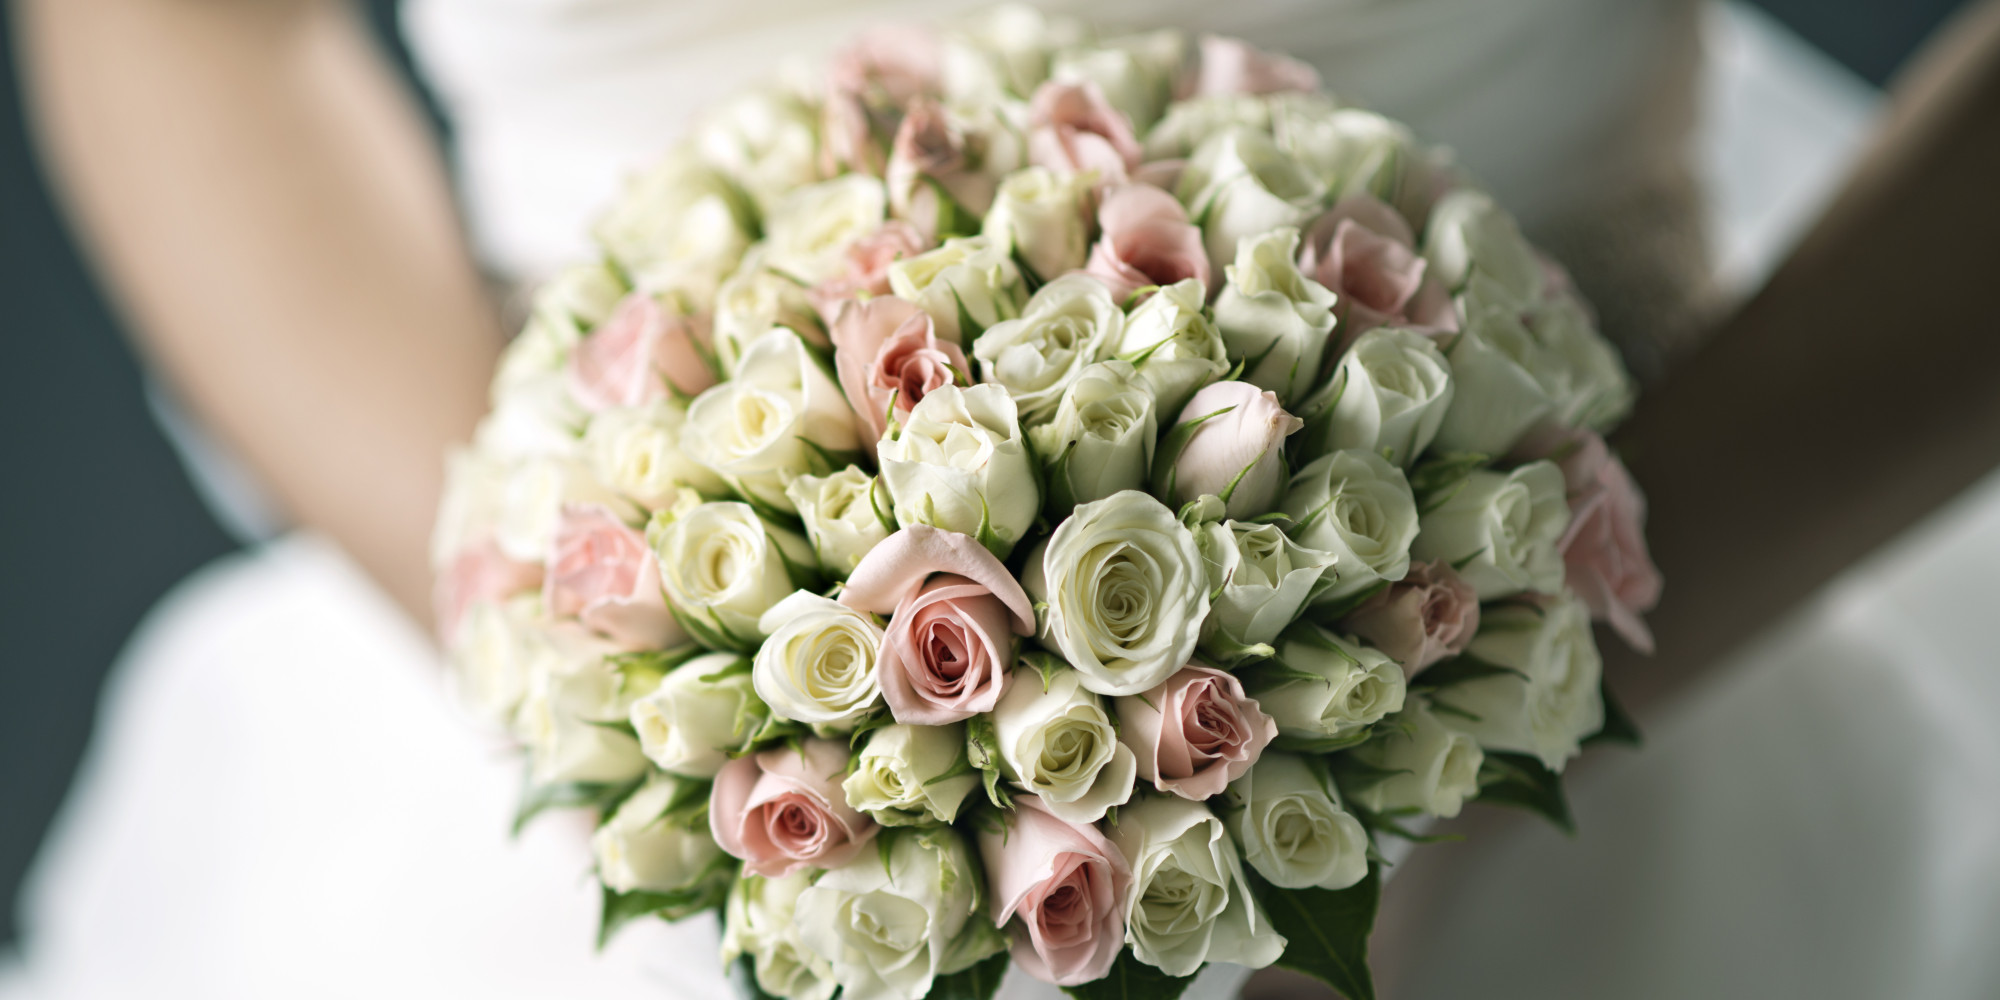 10 Things You Should Never Tell Your Wedding Florist